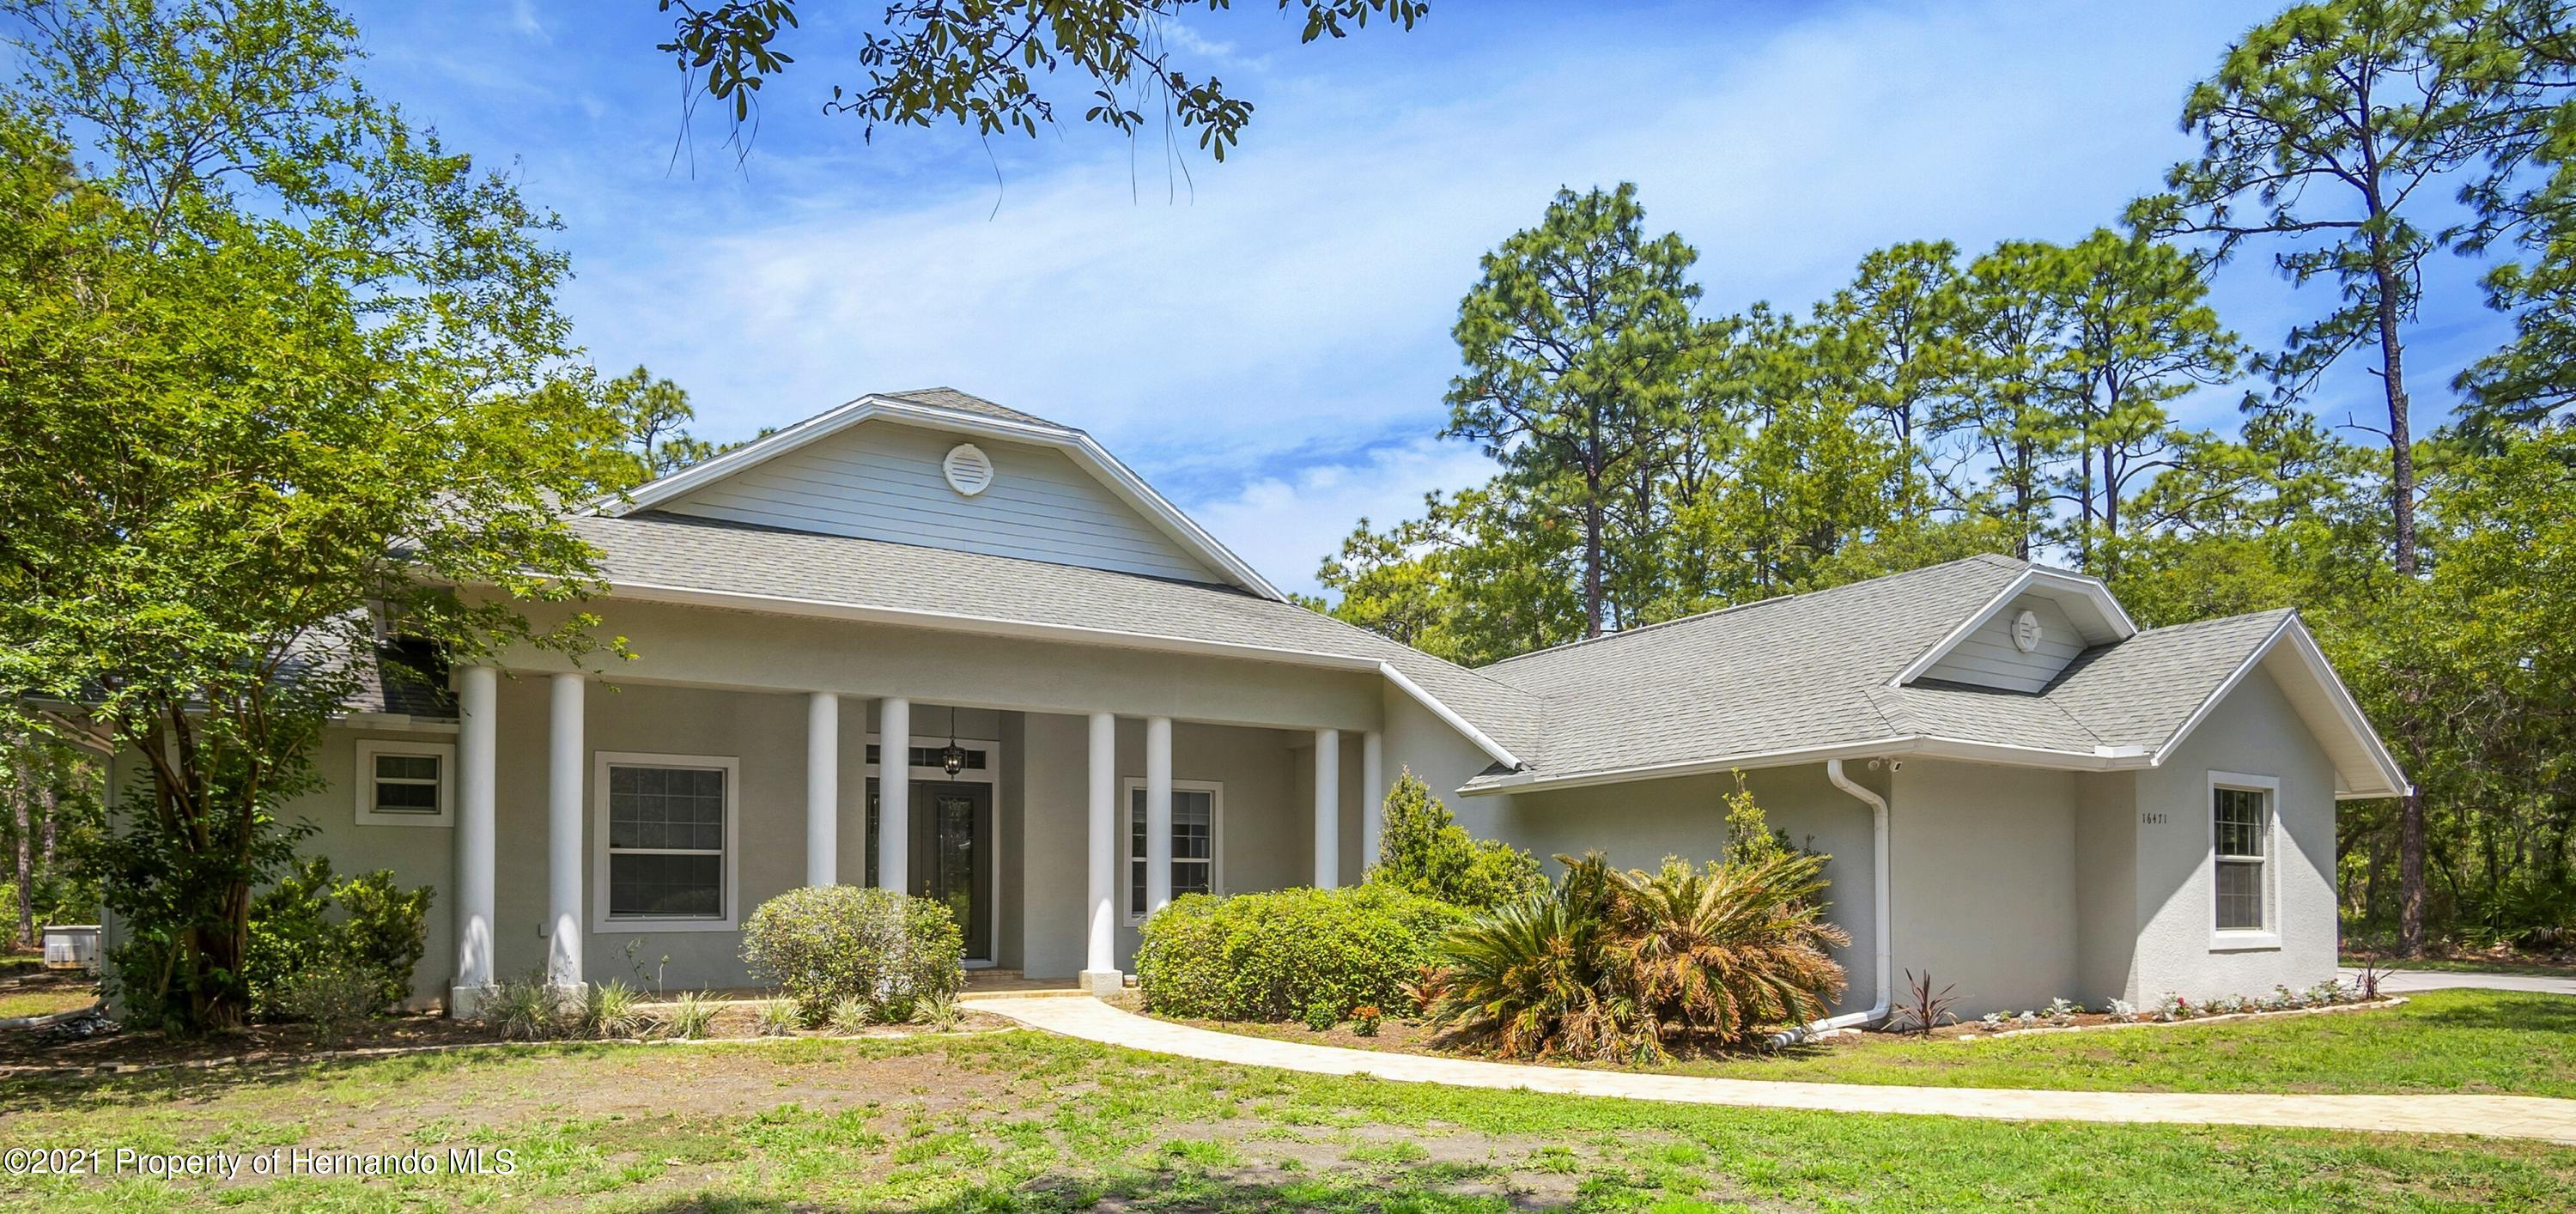 Details for 16471 Hardeman Junction, Weeki Wachee, FL 34614